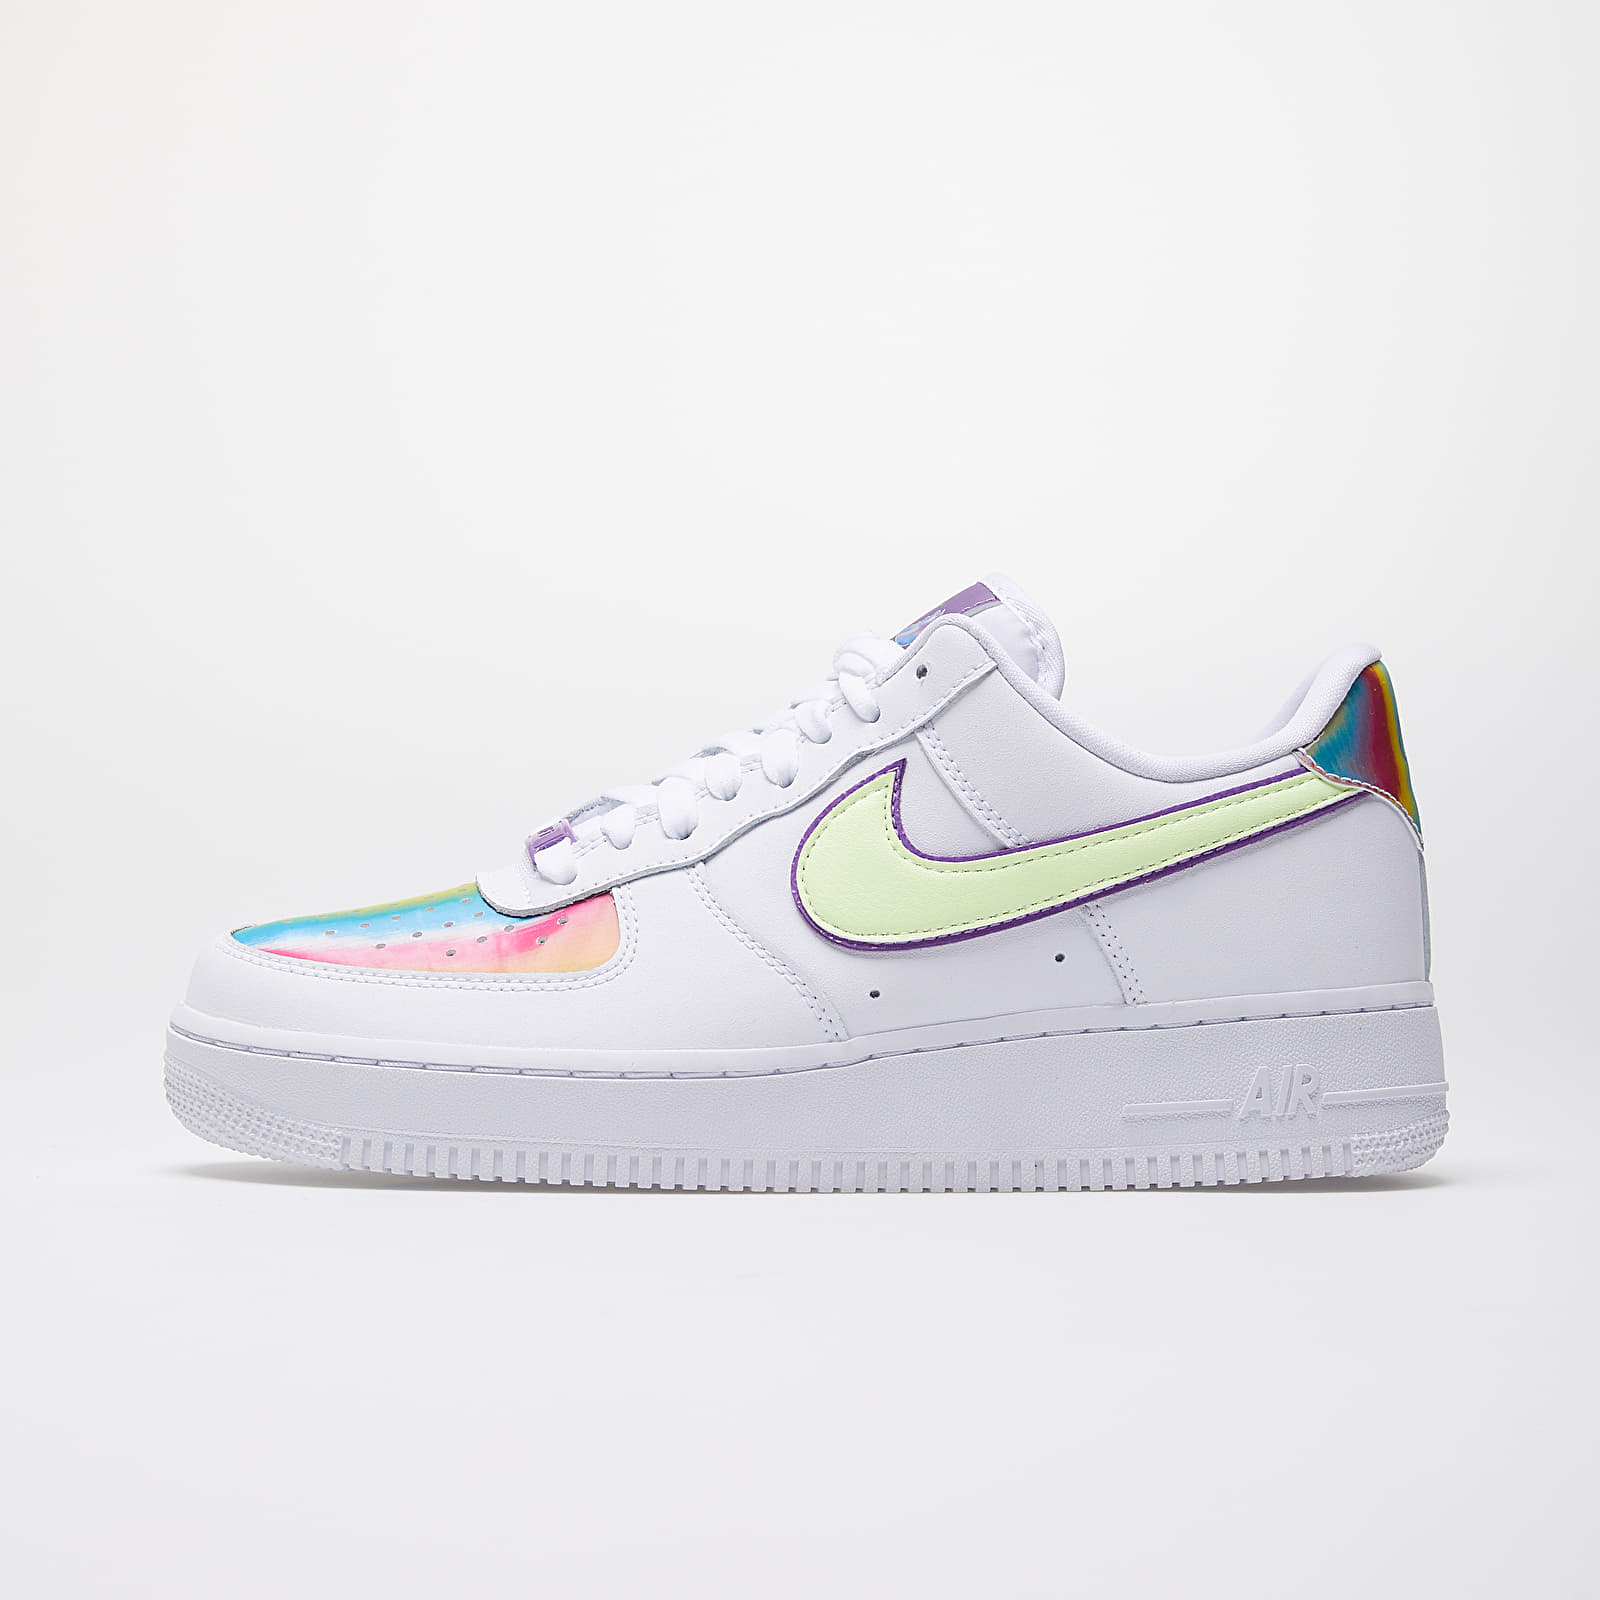 Nike Wmns Air Force 1 Easter White Barely Volt Hyper Blue | Footshop